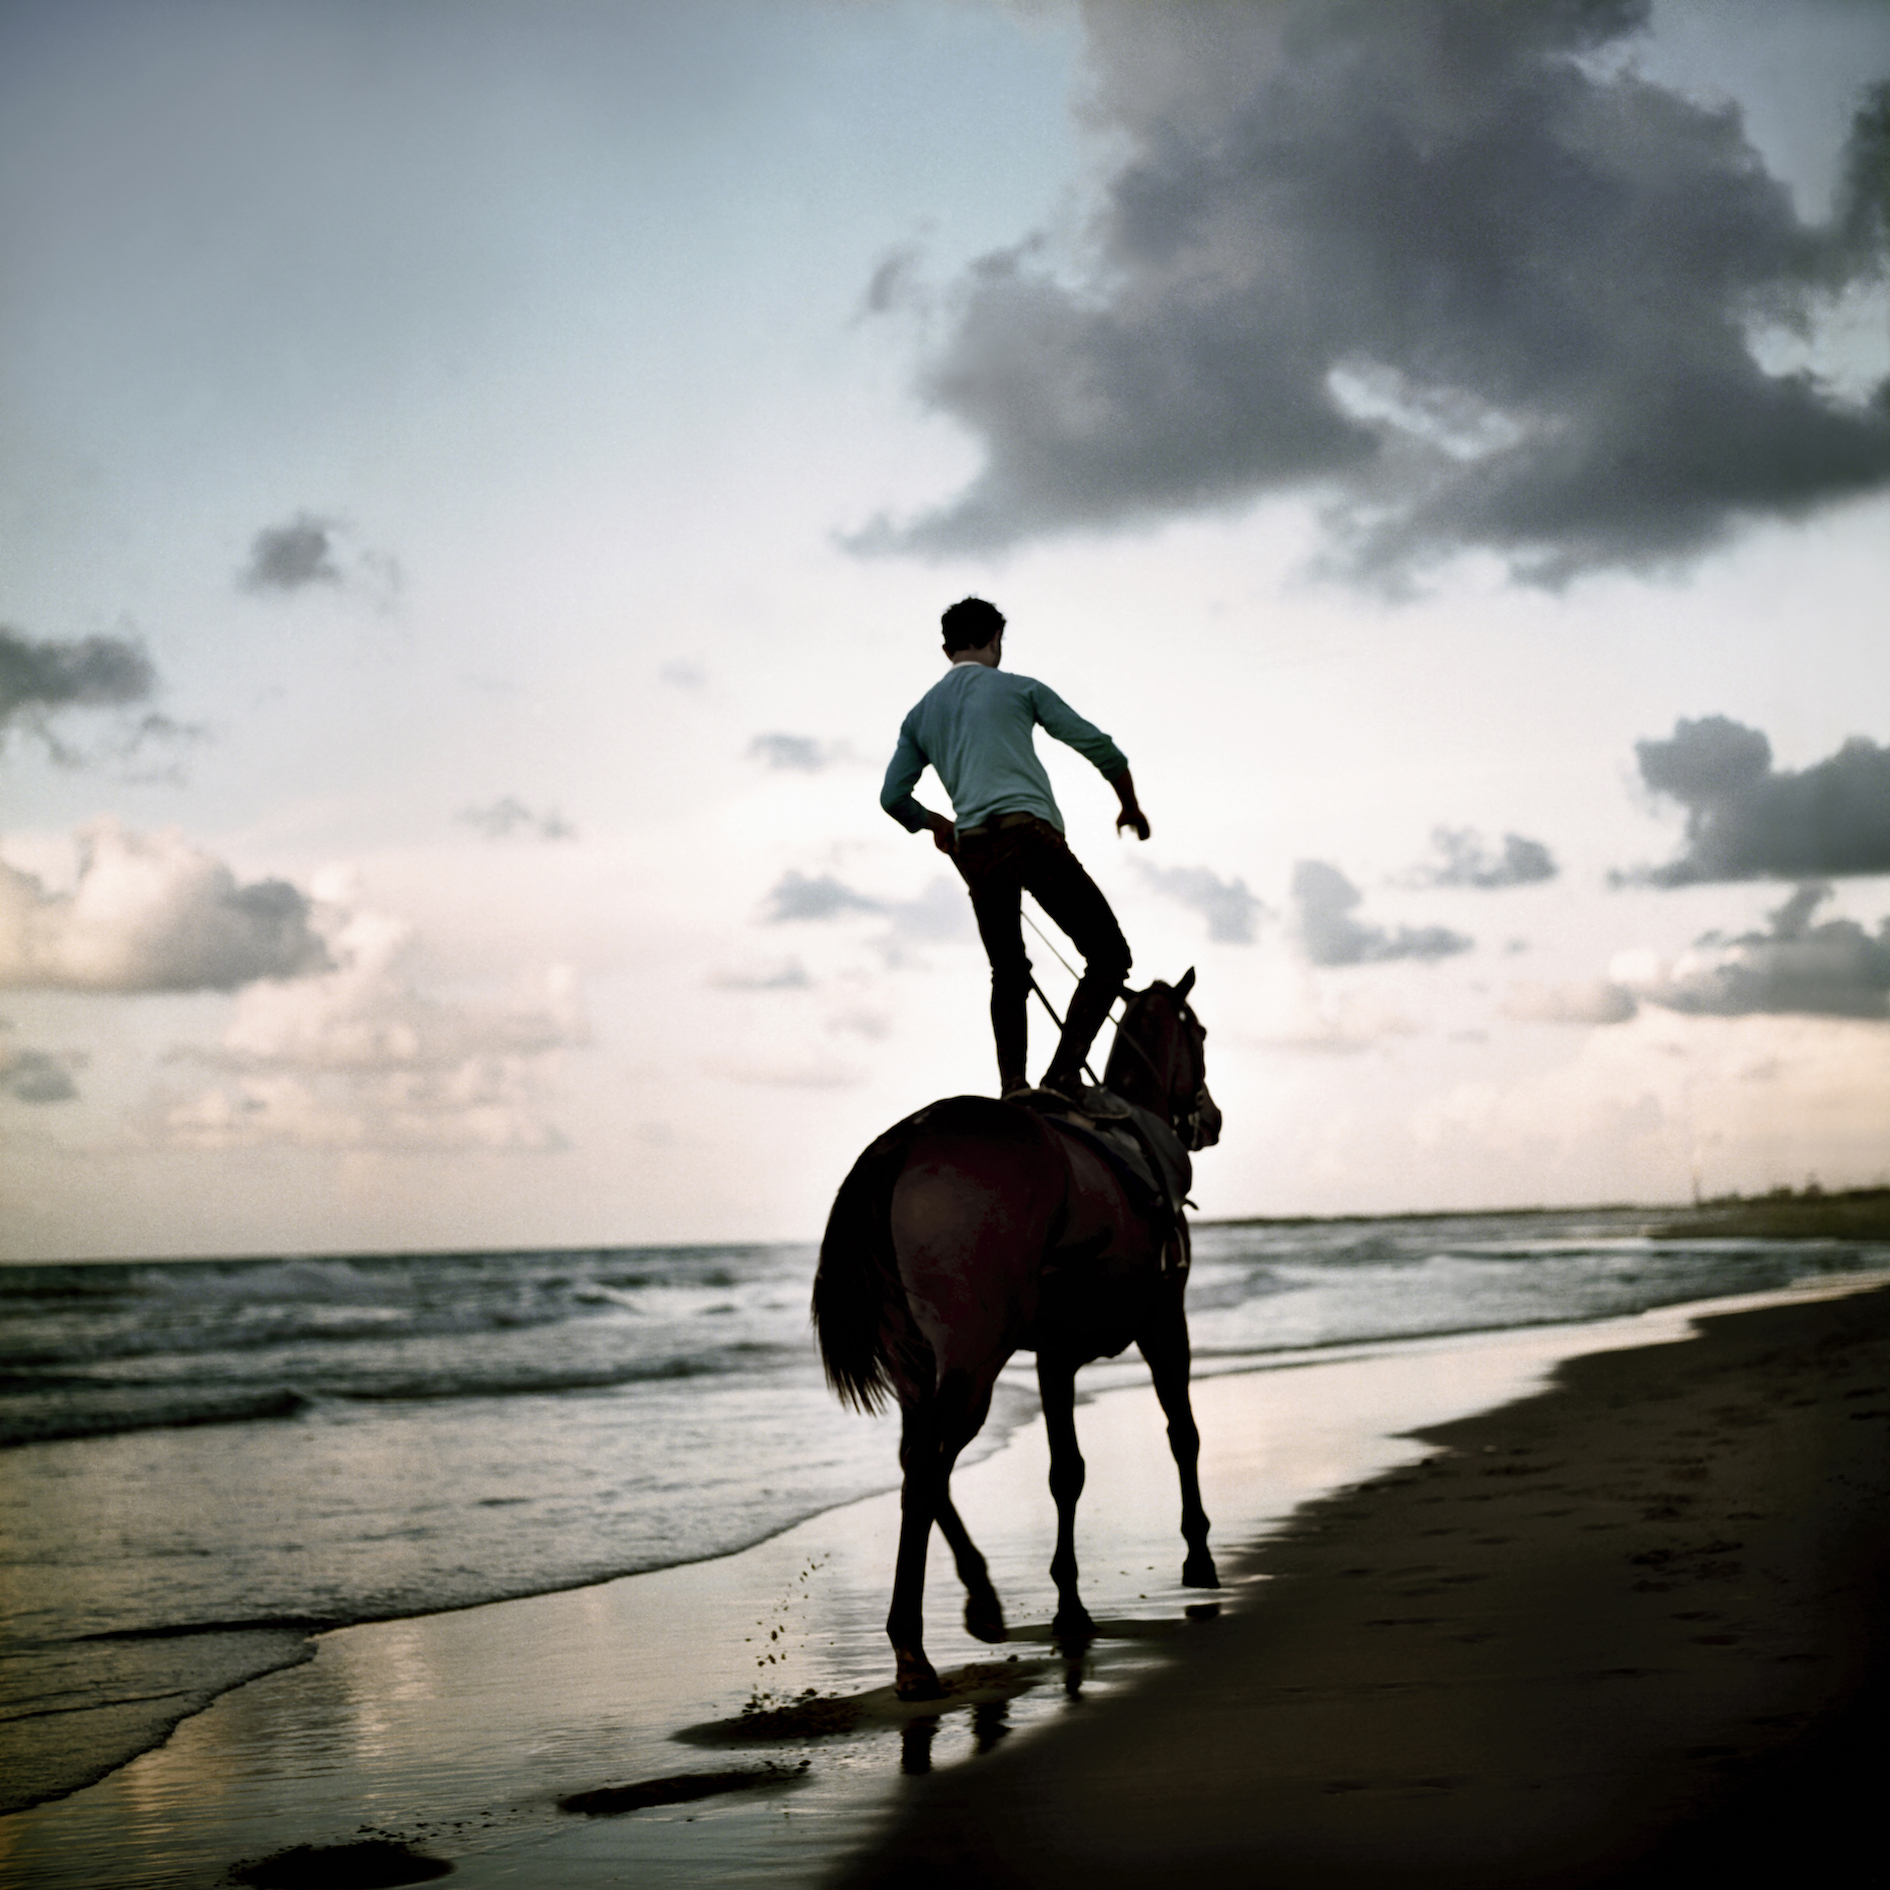 Abdallah rides his horse at dusk, a few days after a truce was announced and Operation pillar of Defense ended. Earlier in the week, riding on the beach would have been impossible due to the war. Abdallah works with his brother, together they perform on horseback in weddings and parties across, just like their father used to do. When asked about his future dreams and aspirations he says: To stay with my horse all the time, all my life.